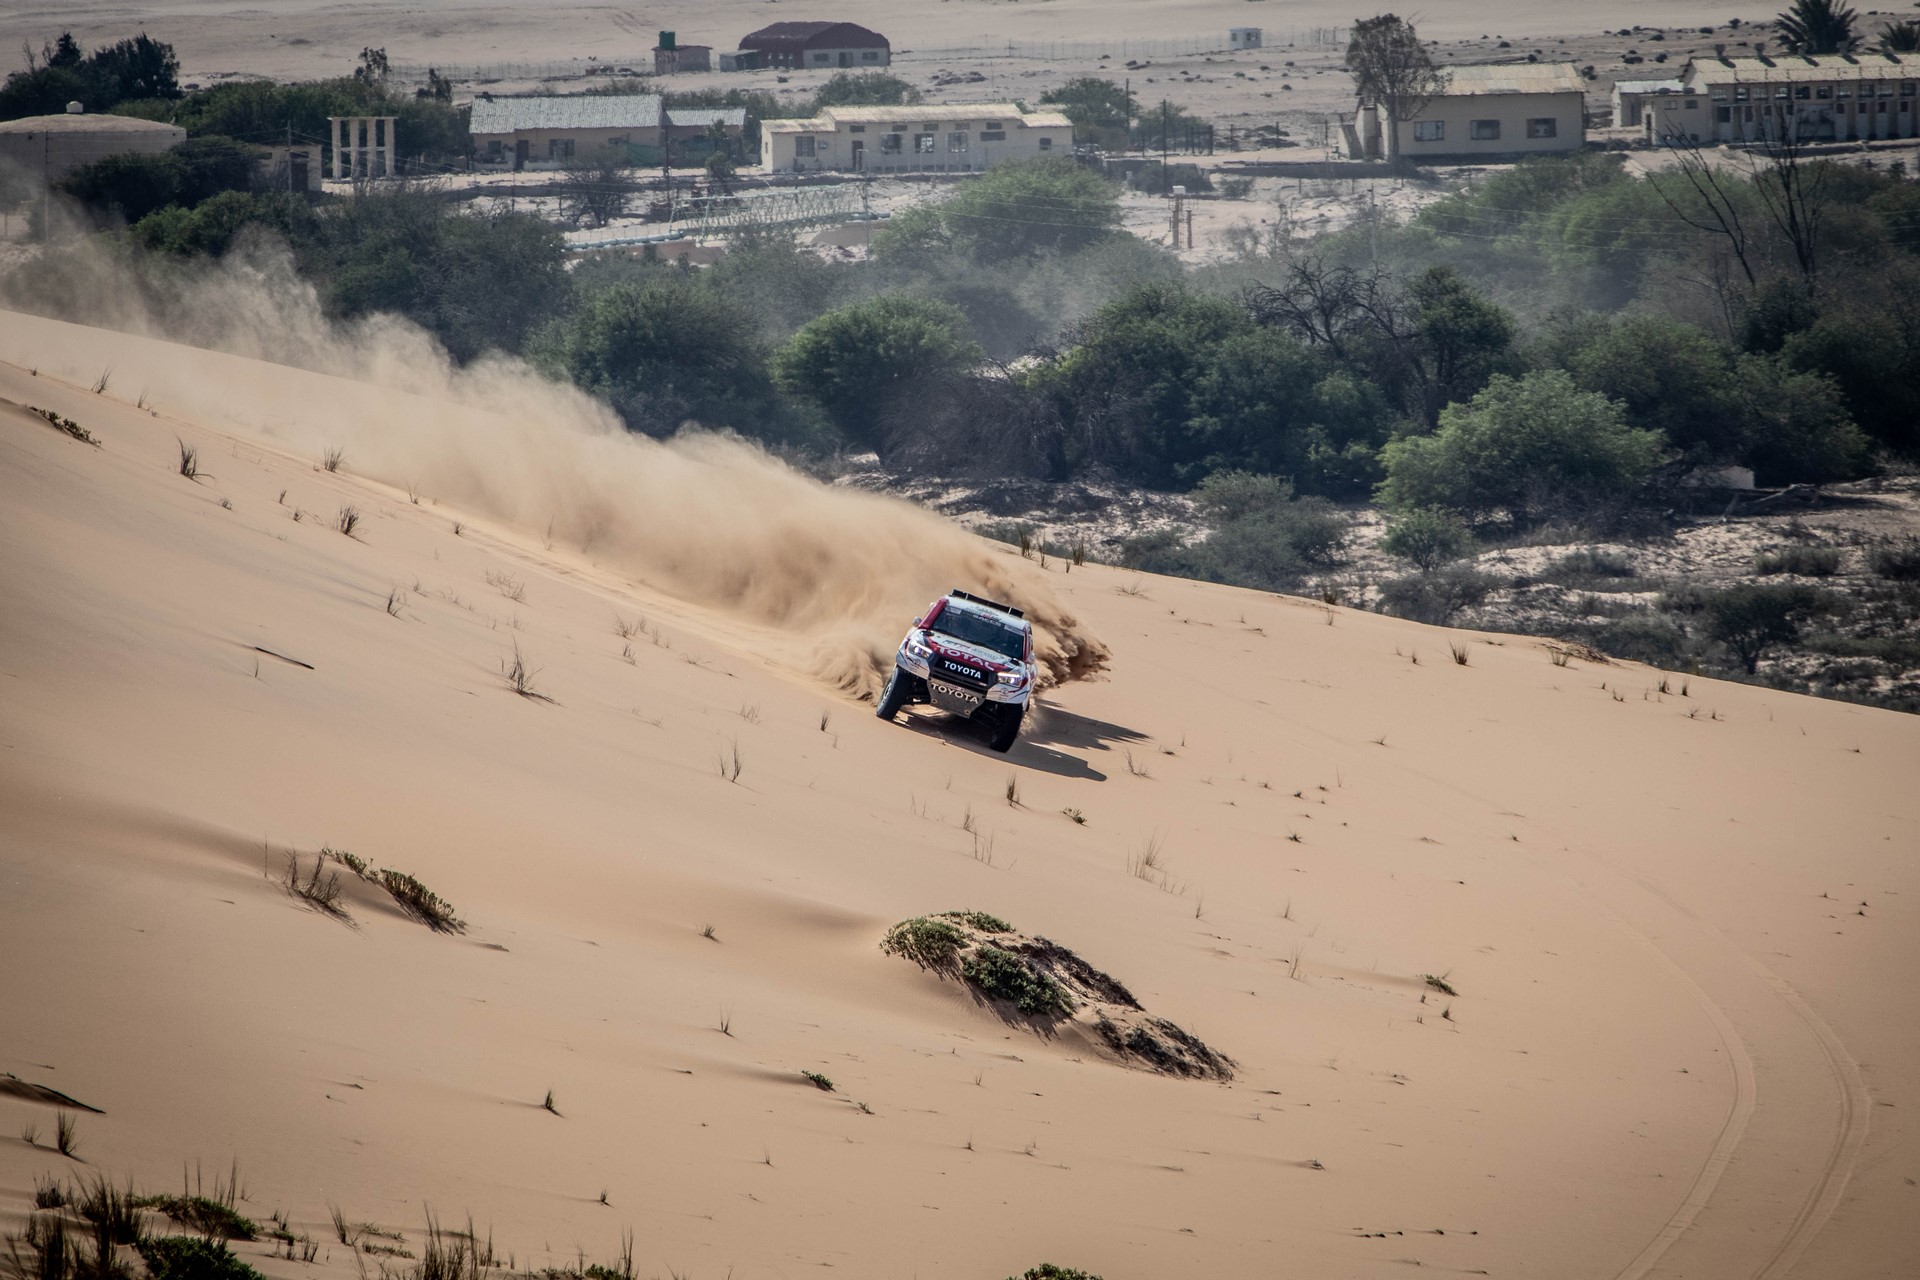 Fernando-Alonso-Training-Namibian-desert-10